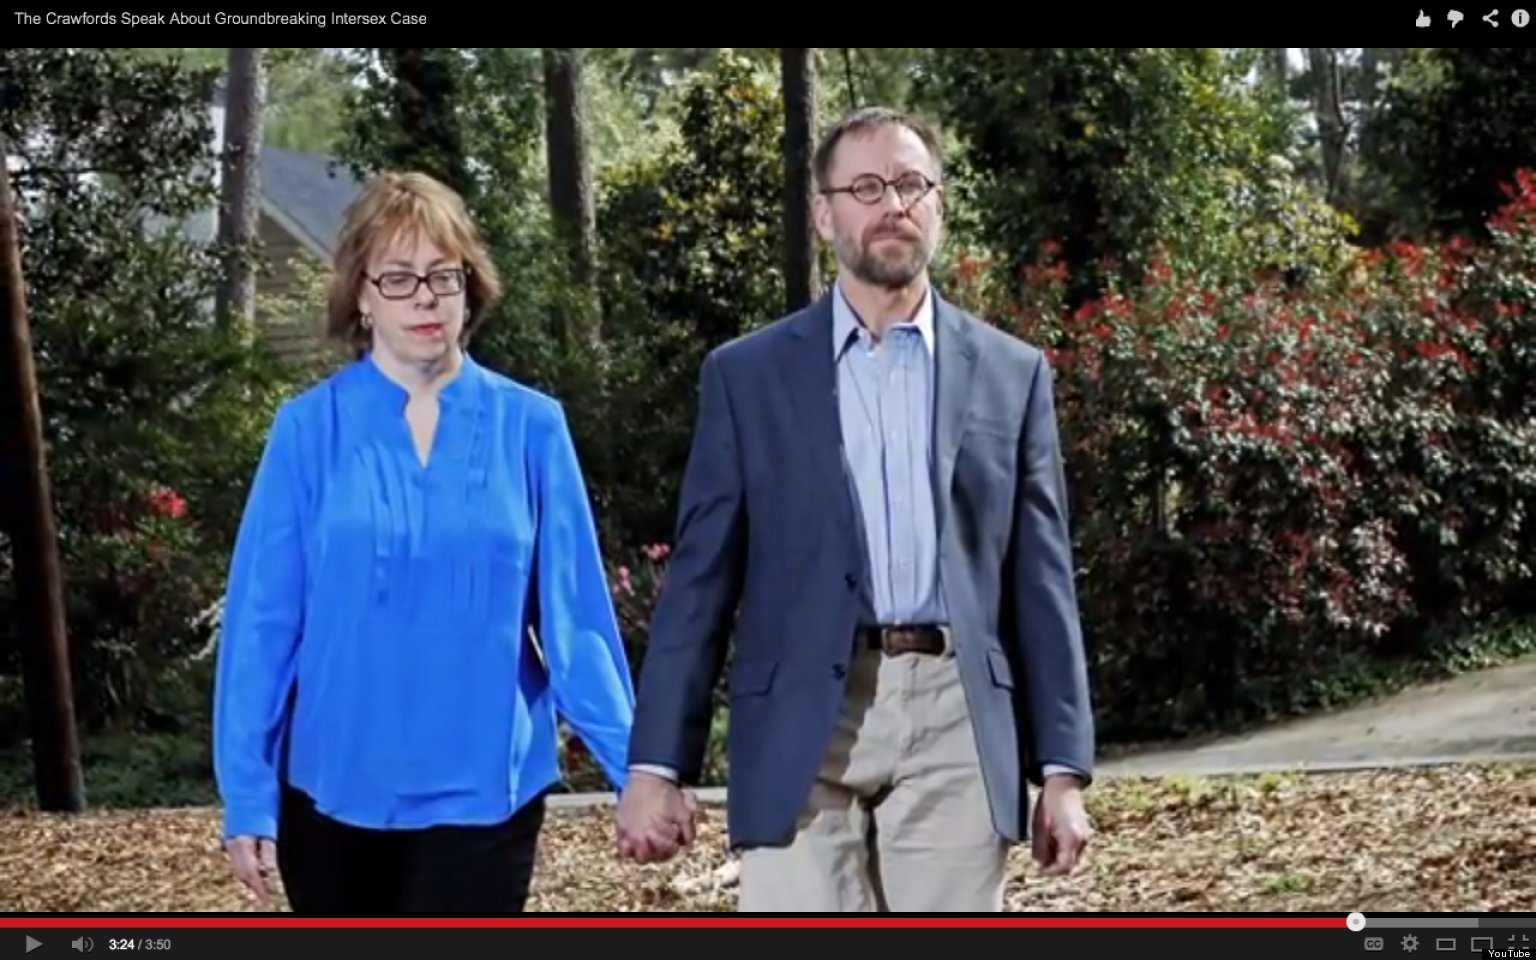 Mark and pam crawford parents of intersex child sue south carolina